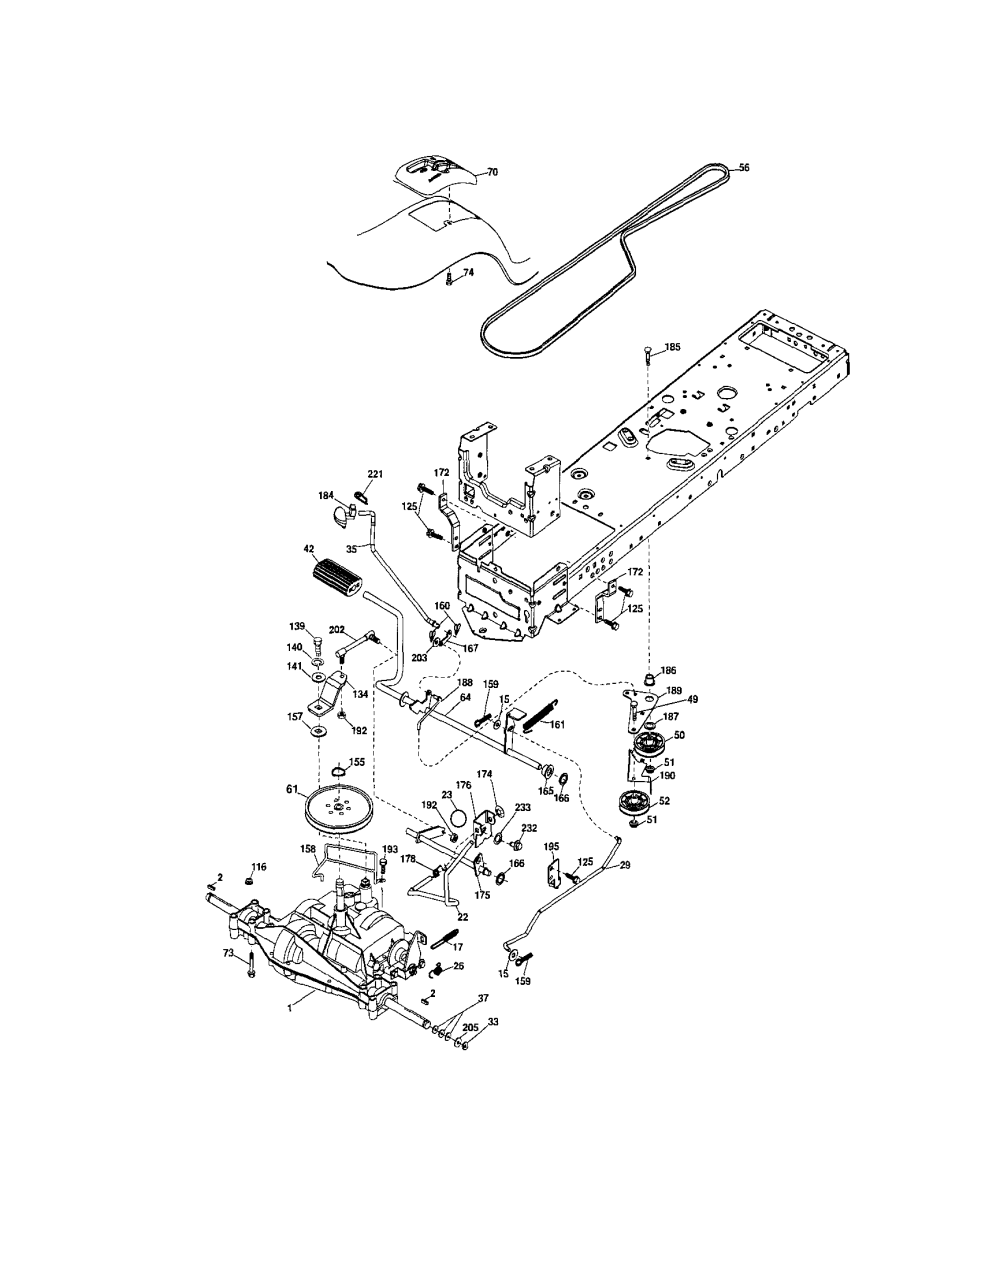 medium resolution of lt 1500 craftsman riding lawn mower belt diagram image